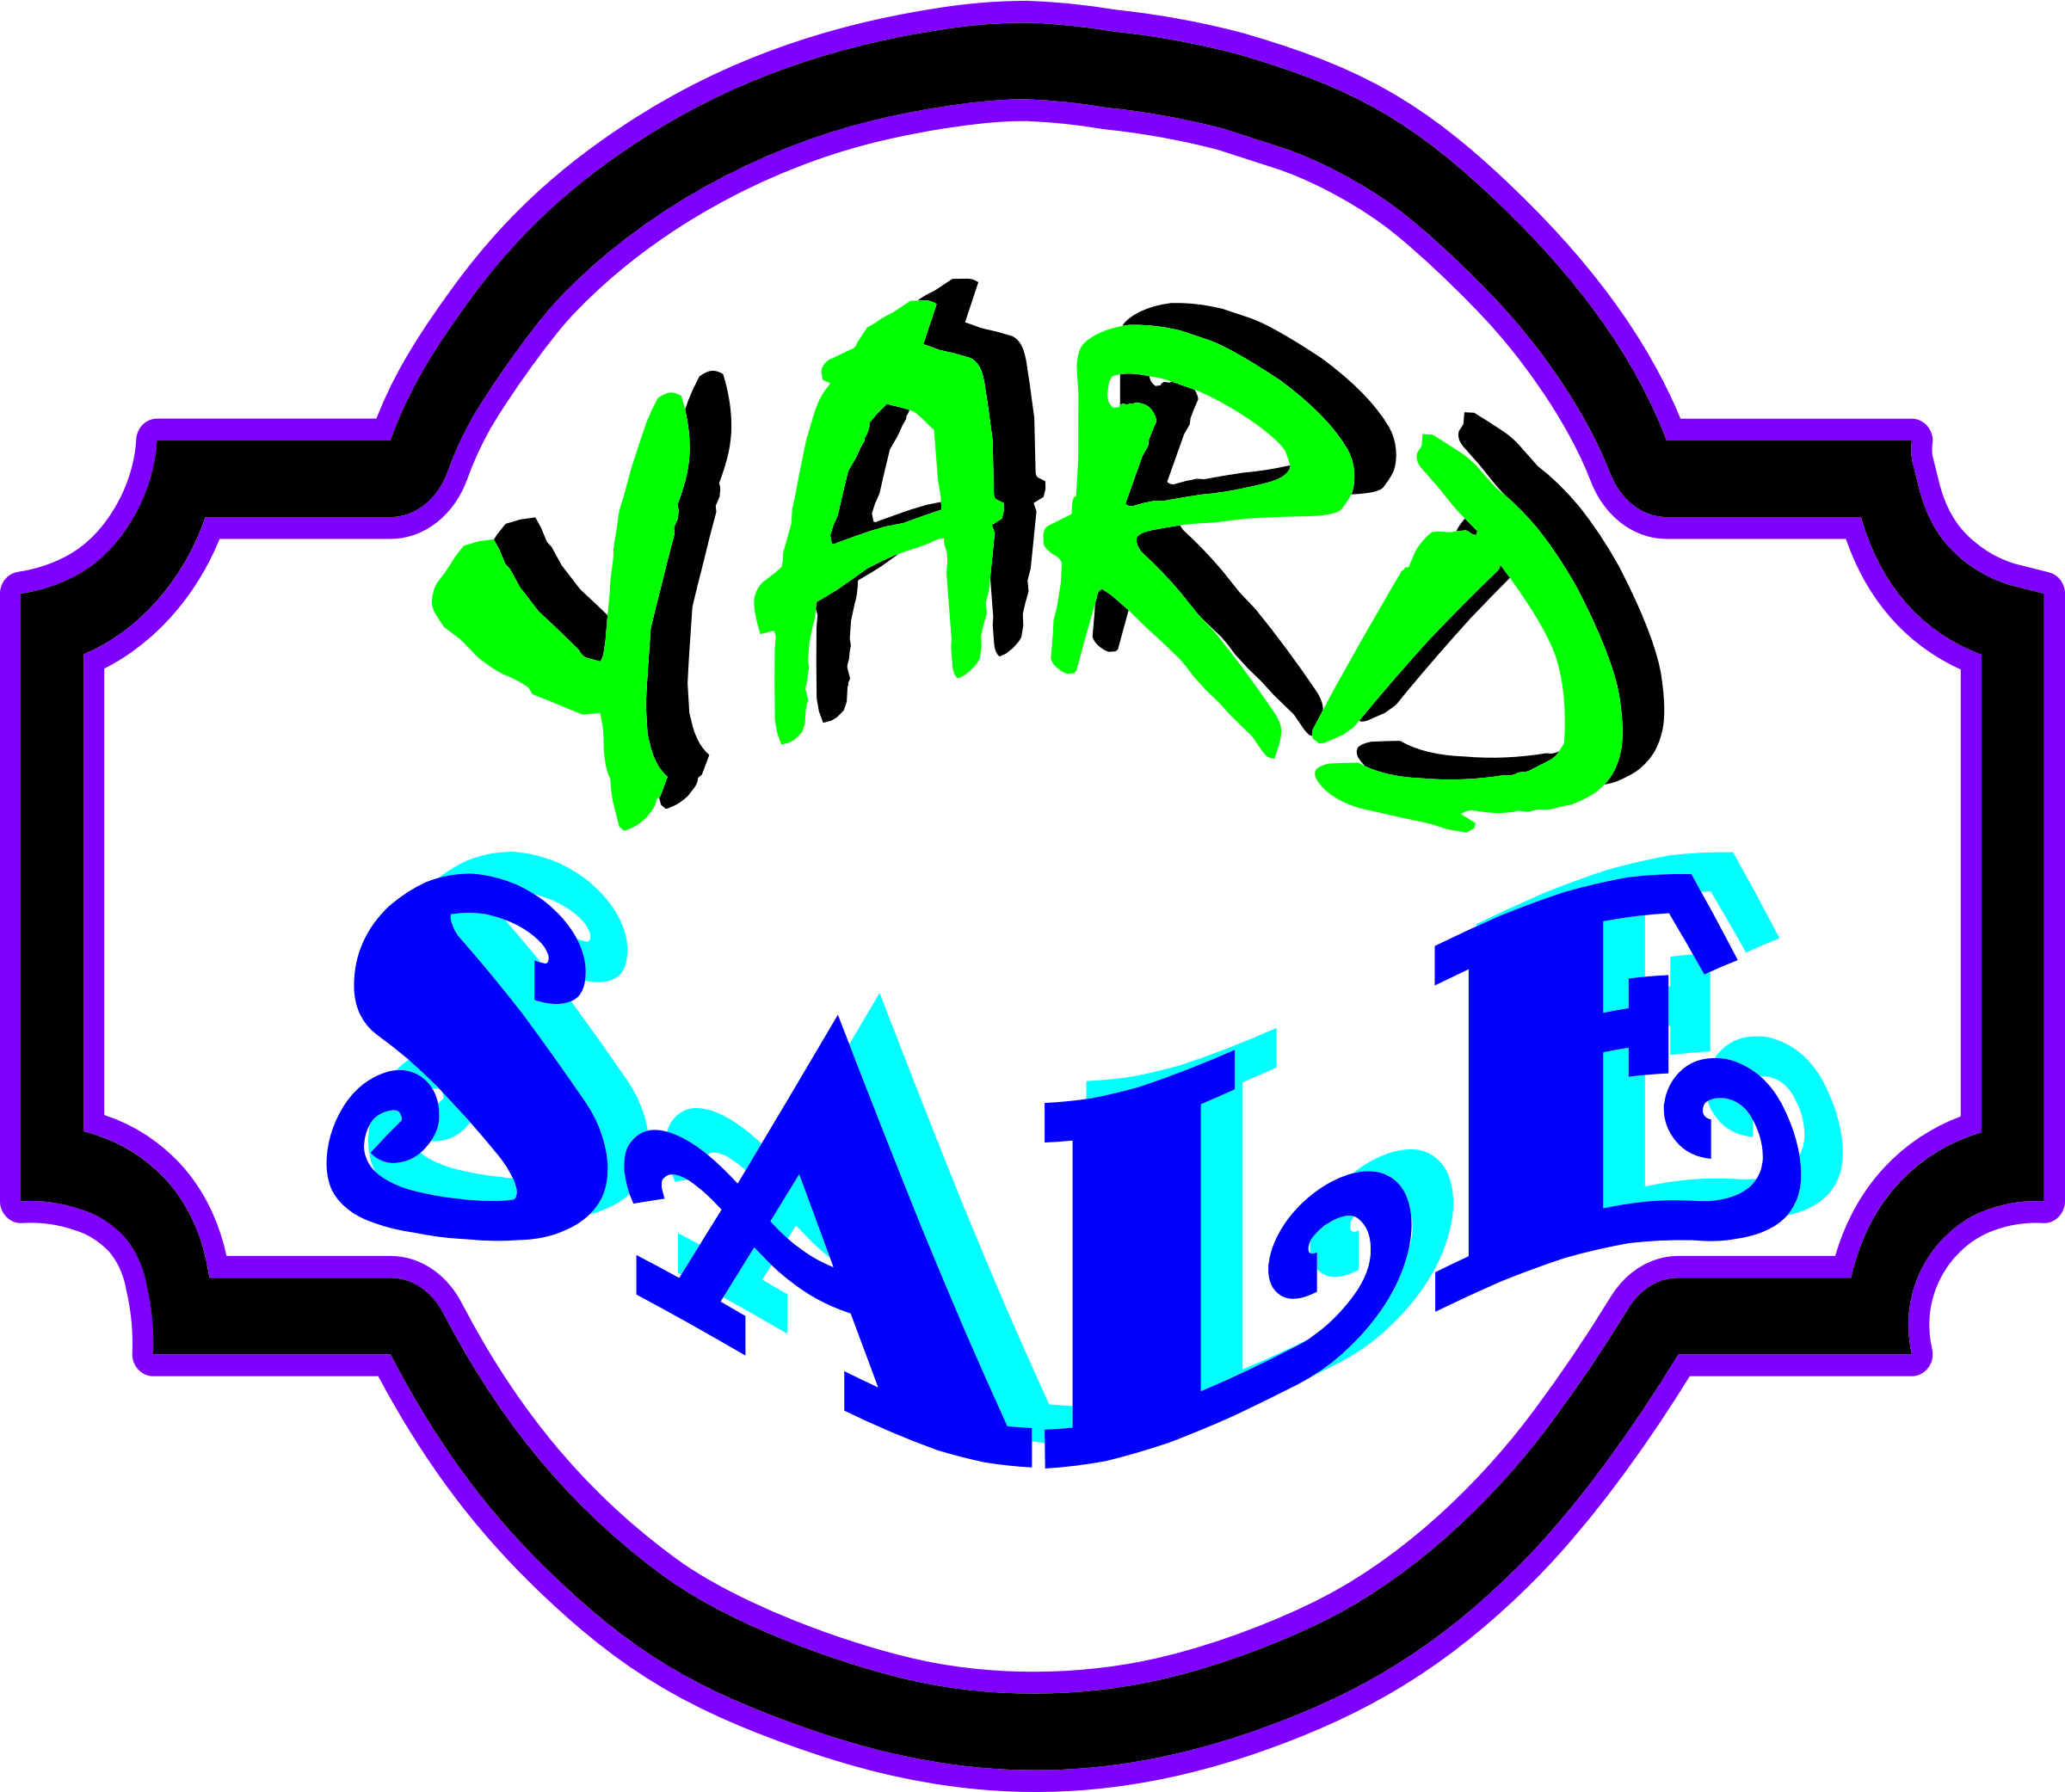 free png yard sale sign transparent yard sale sign png images pluspng rh pluspng com yard sale clip art to post on facebook yard sale clip art images